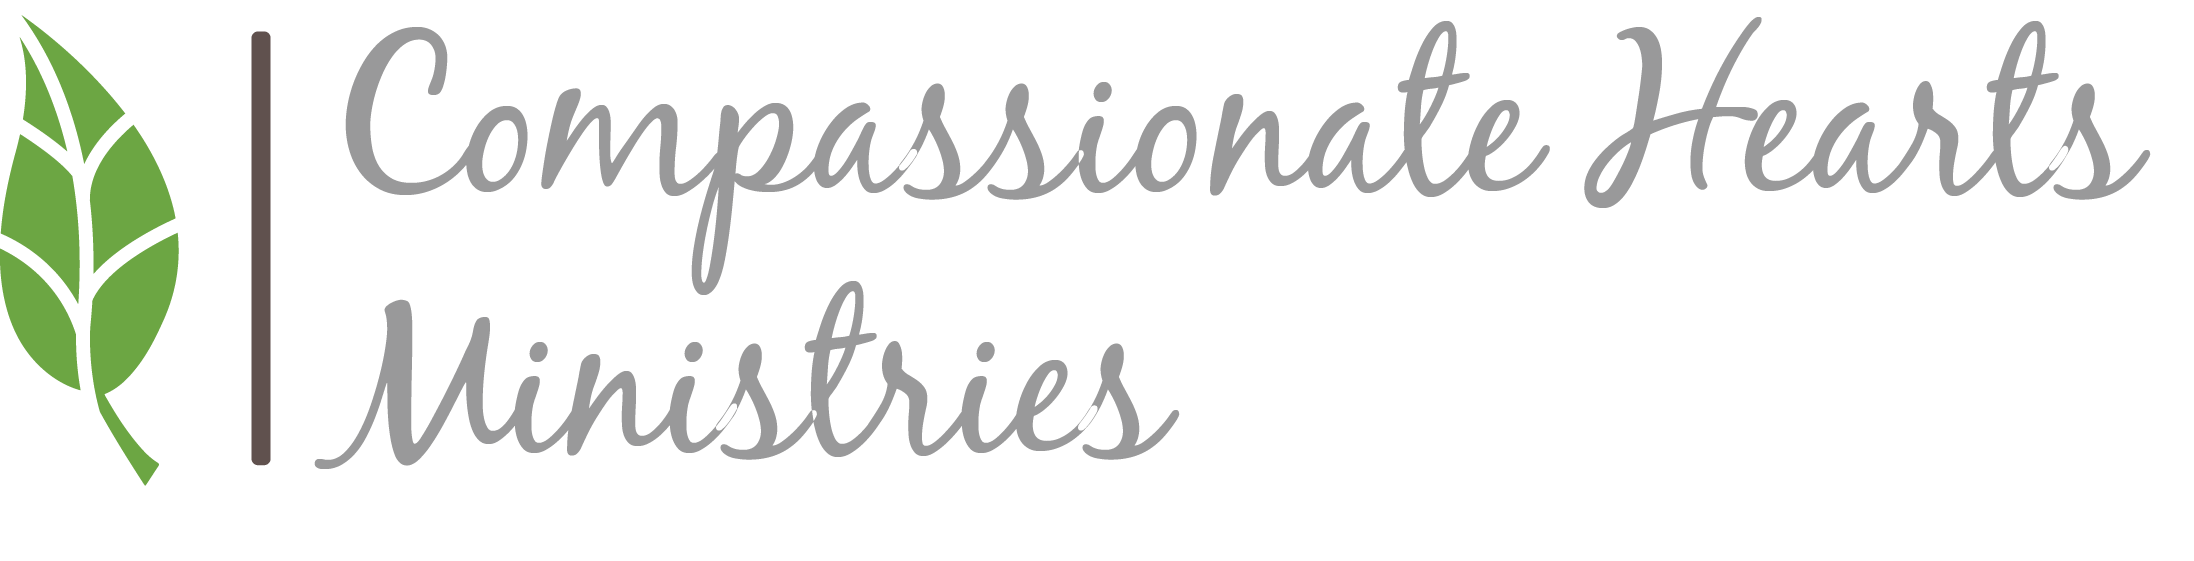 CompassionateHeartsMinistry-Logo.png